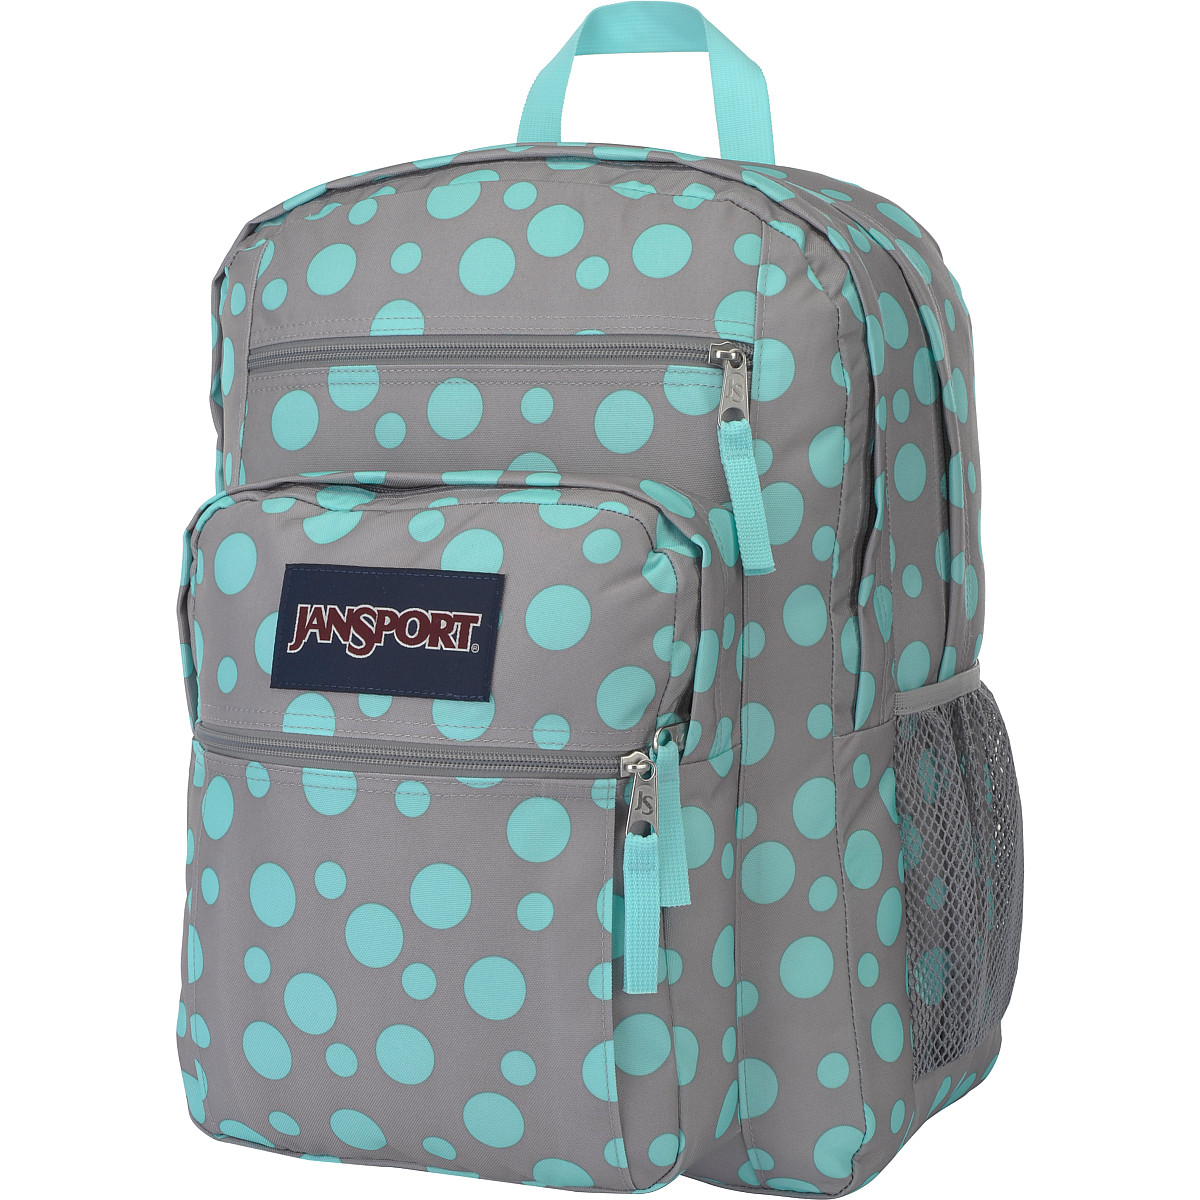 Where To Buy Jansport Backpacks GC7t589s